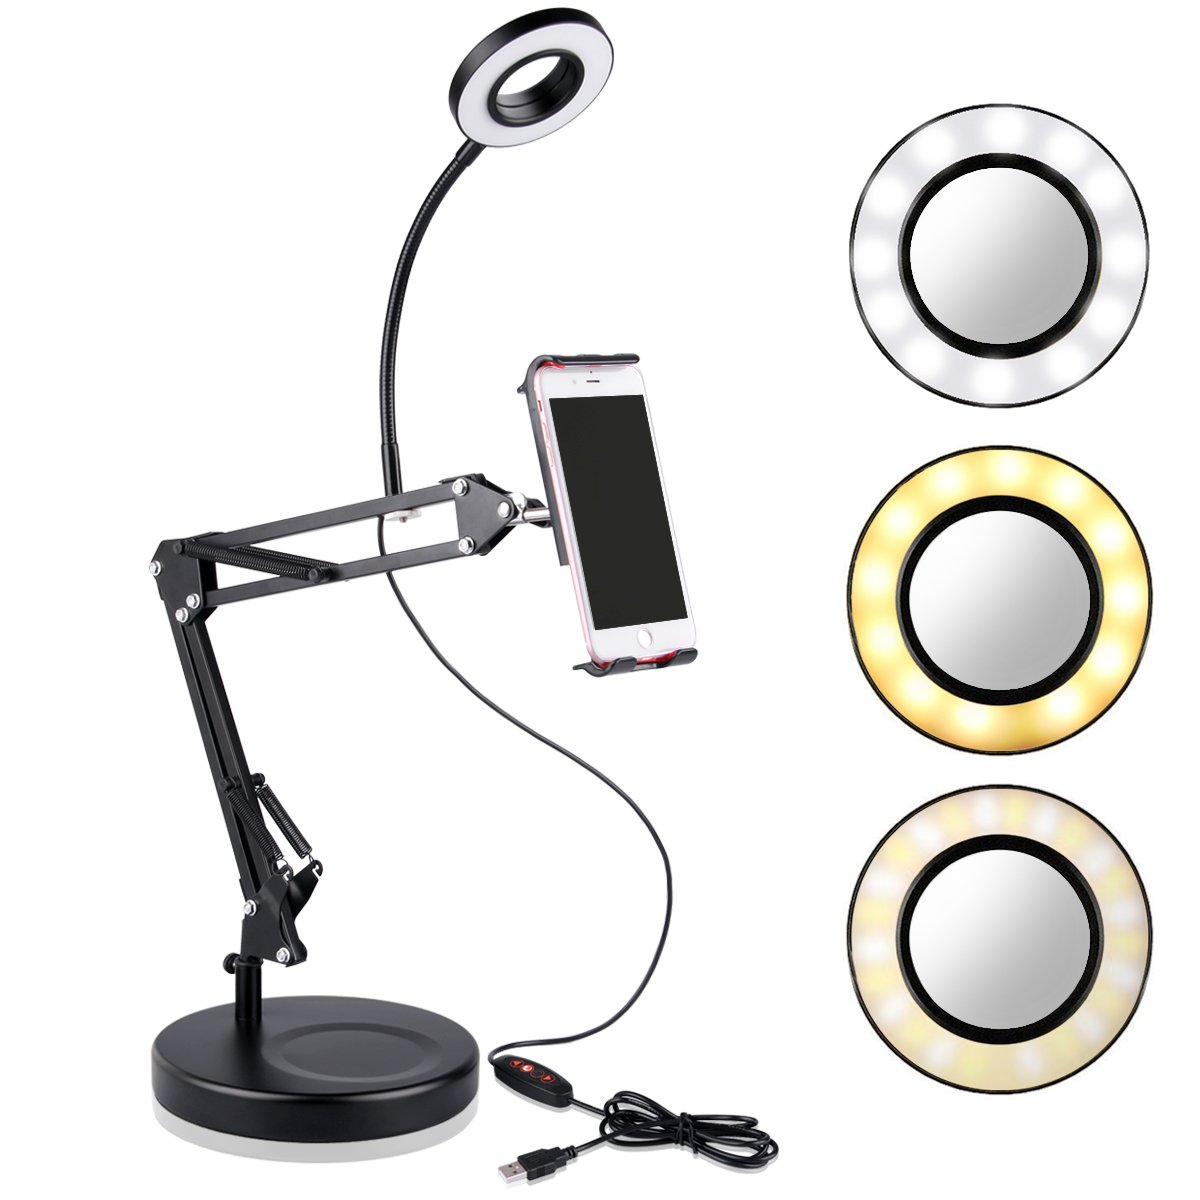 B-Land Cell Phone Holder with Selfie Ring Light for Live Stream, LED Camera LED Light with Mirror Flexible iPad Stand Holder Mobile Phone Stand for iPhone, Andriod Phone & Tablets by B-Land